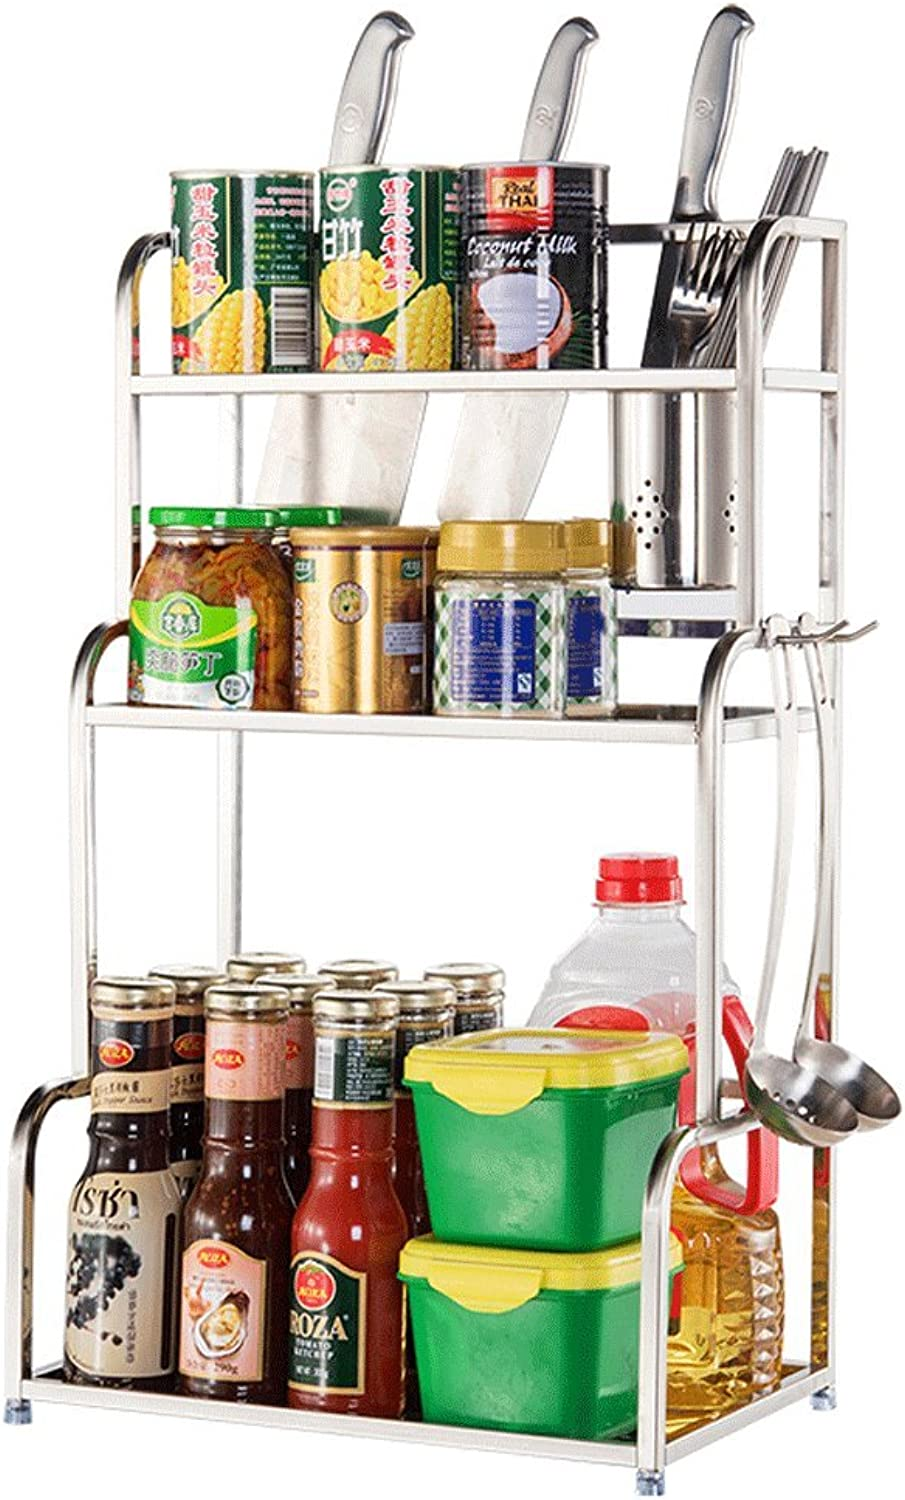 DGF Kitchen Rack, 304 Stainless Steel Floor Kitchen Storage Rack, 3 Layer Chopsticks Frame (L40cm  W22.5cm  H59cm)